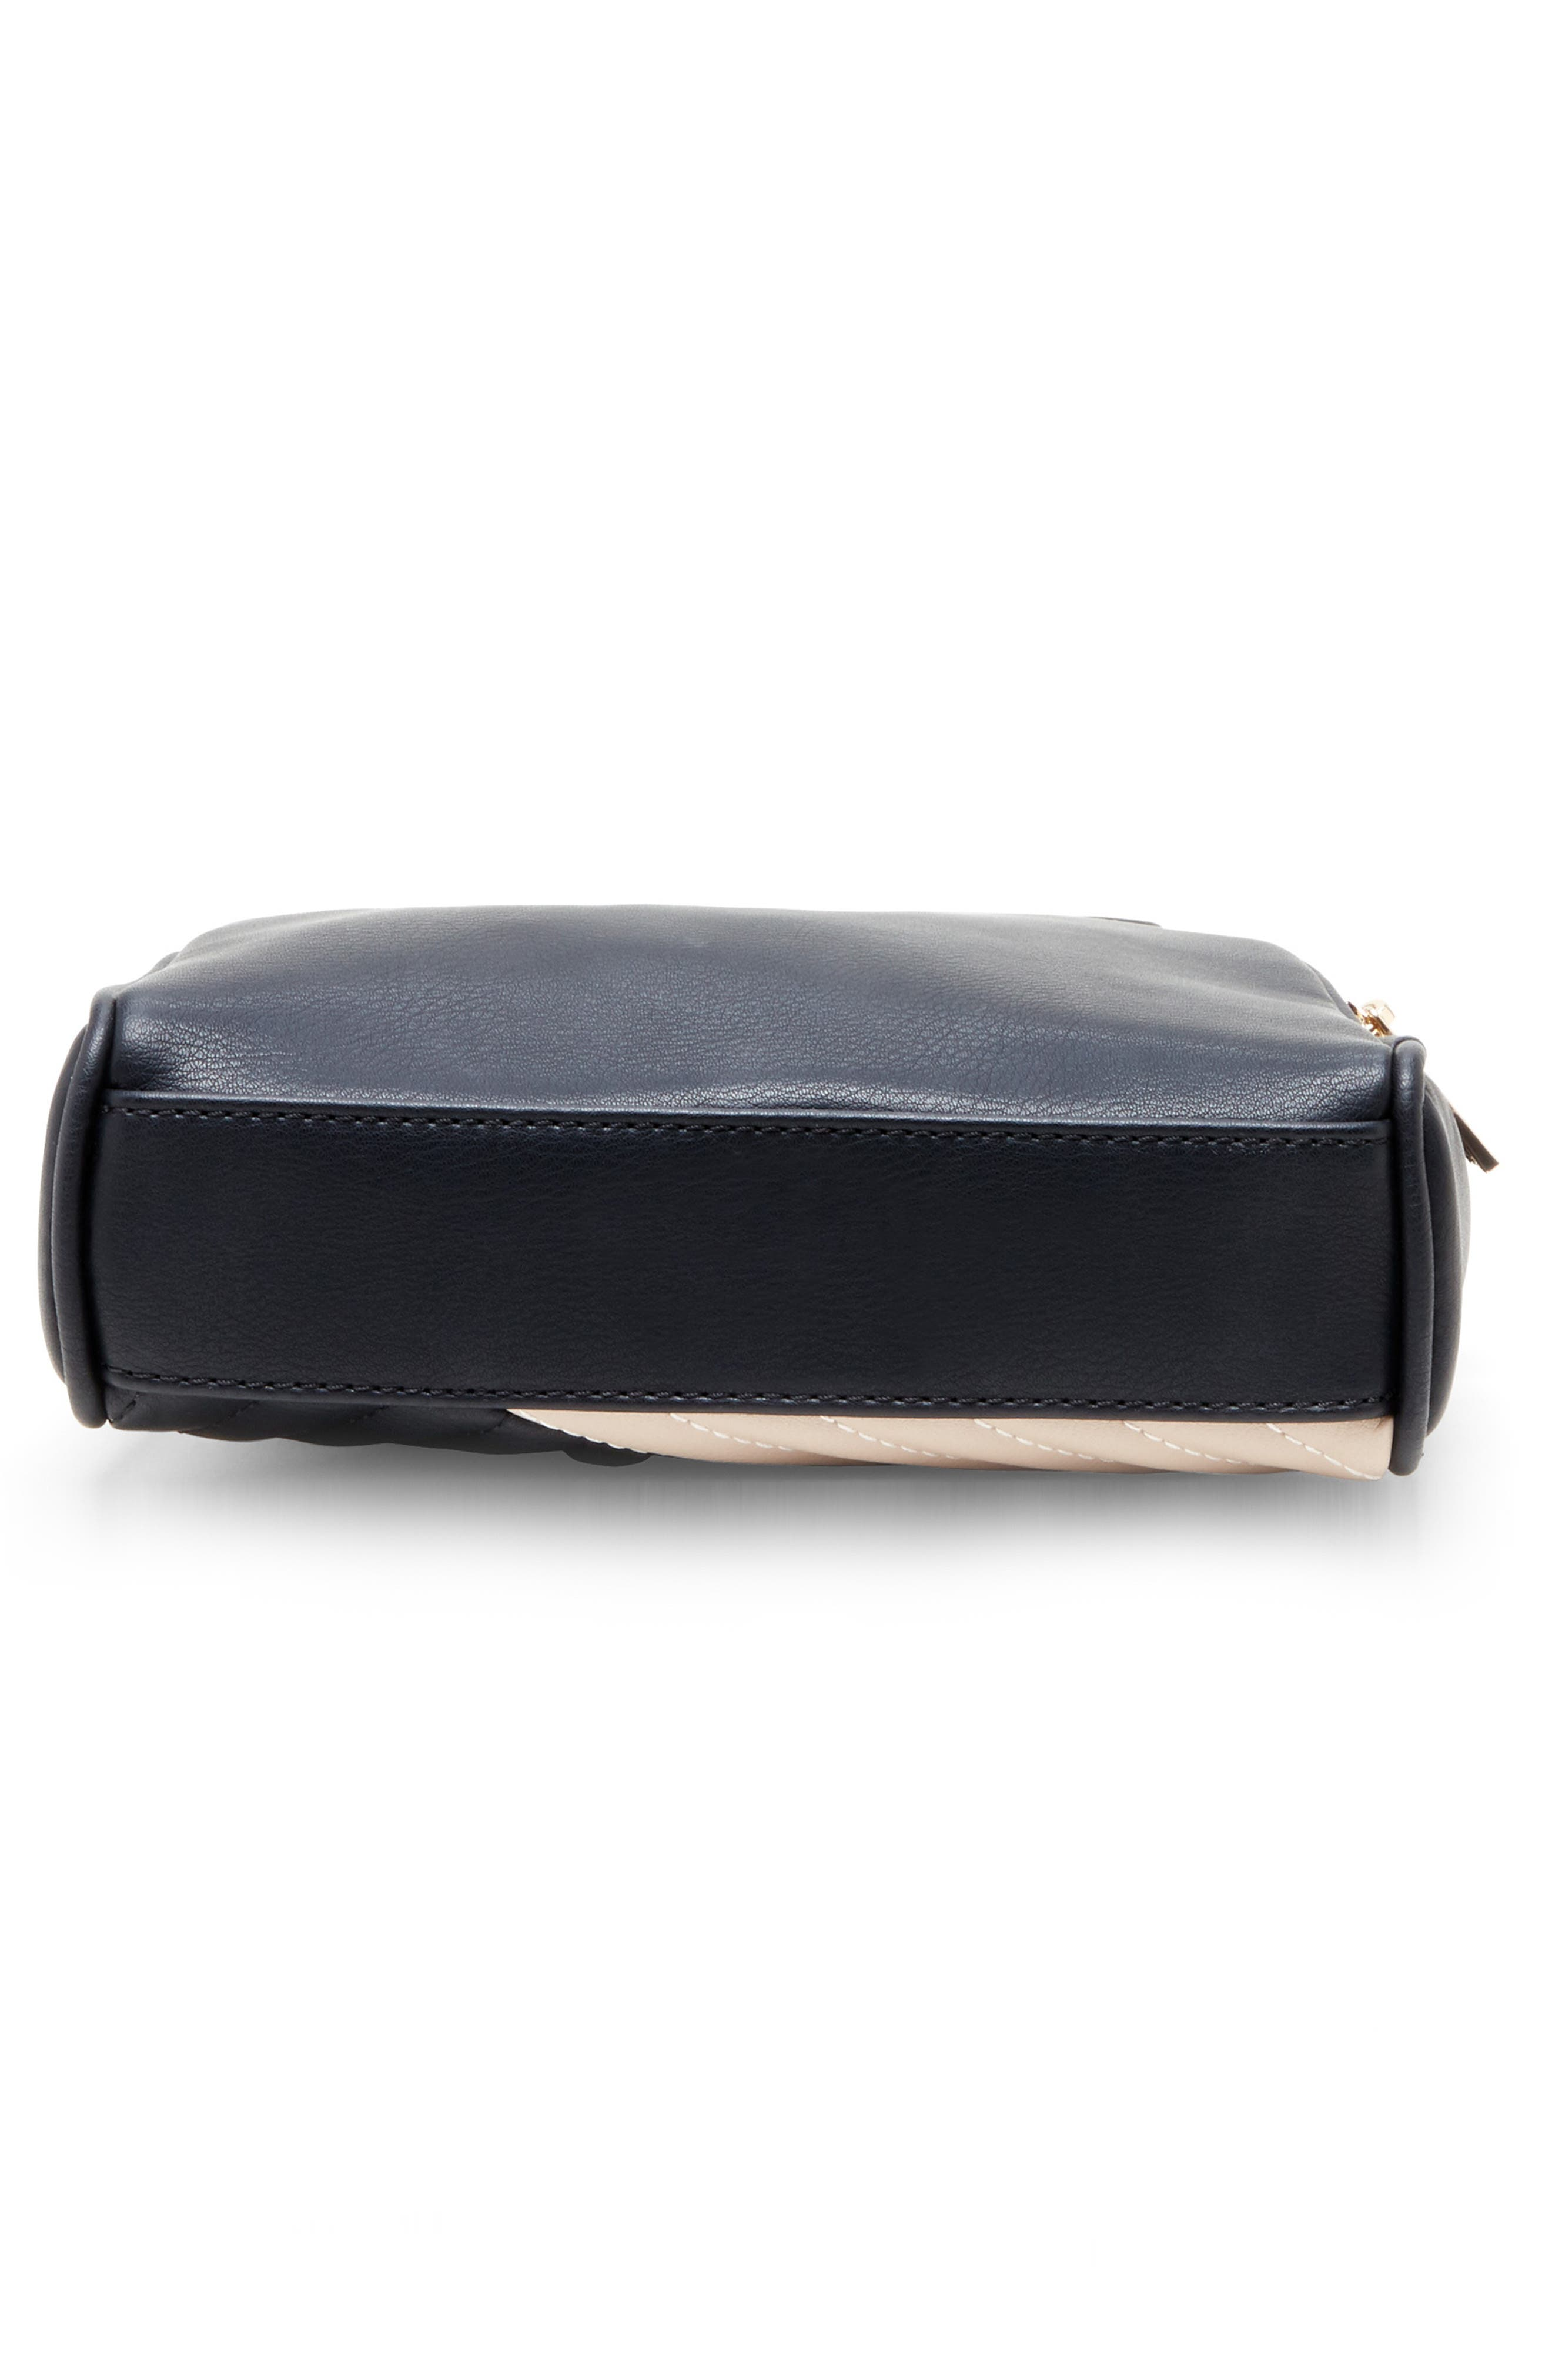 SOLE SOCIETY, Linza Faux Leather Crossbody Bag, Alternate thumbnail 5, color, BLACK/ CREAM